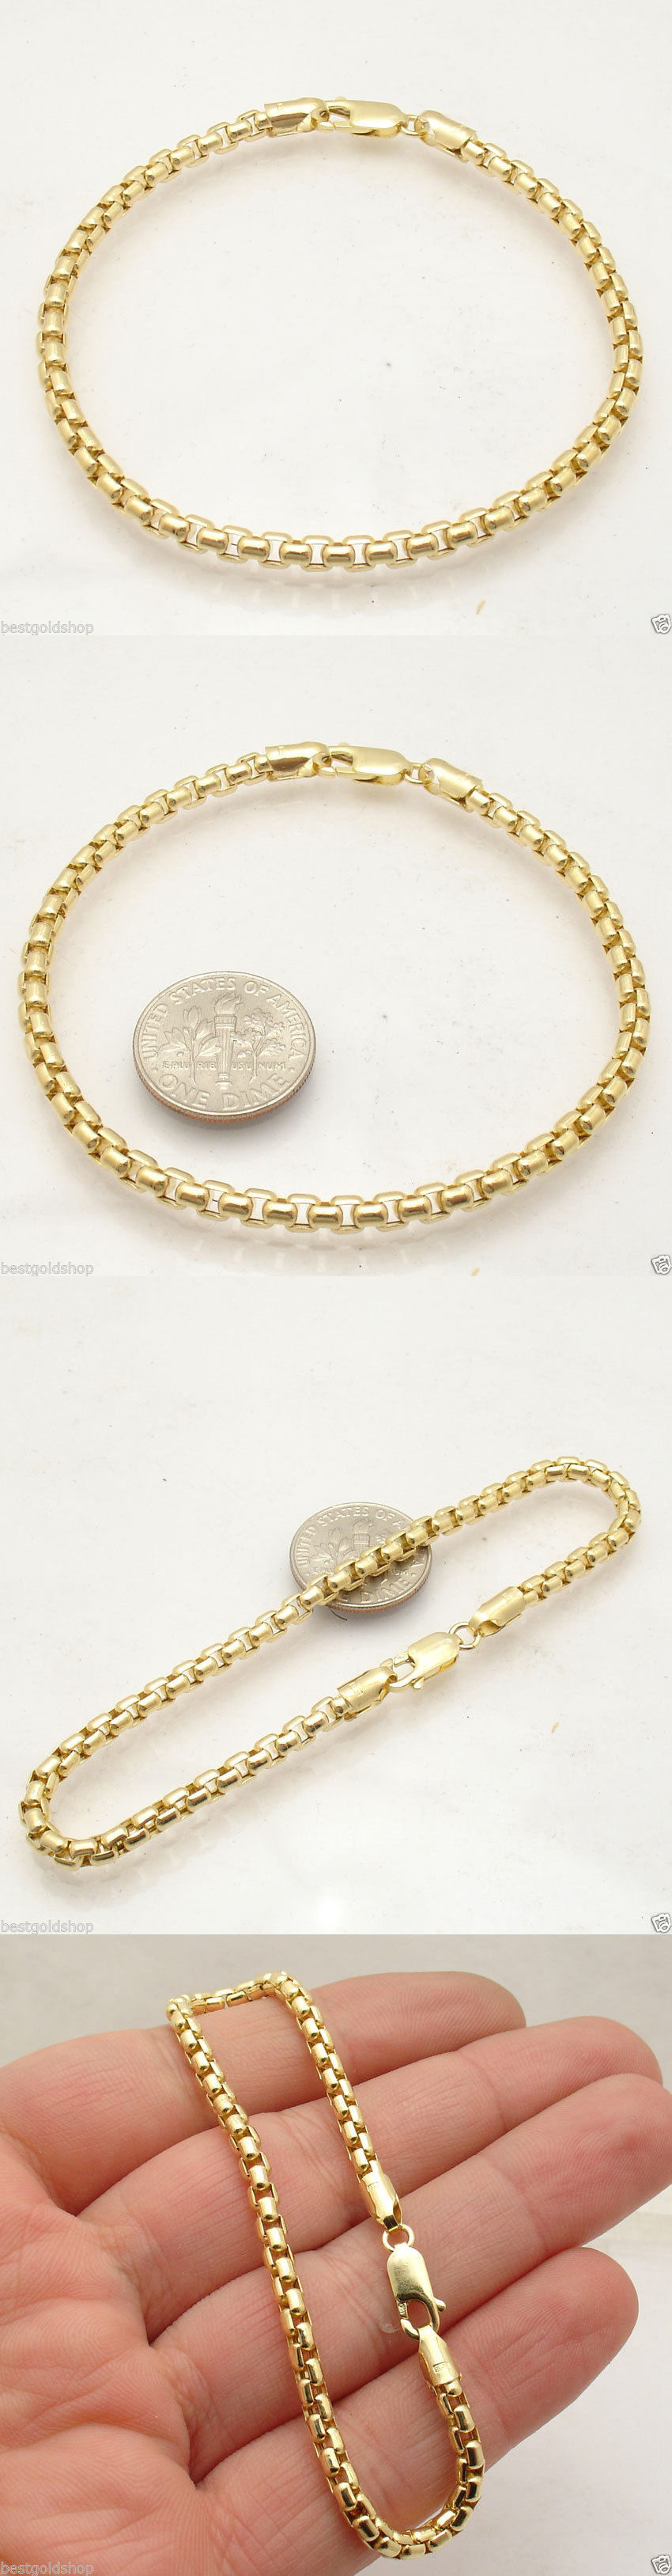 Real 10K Yellow Gold Venetian Round Box Chain Bracelet Lobster Clasp